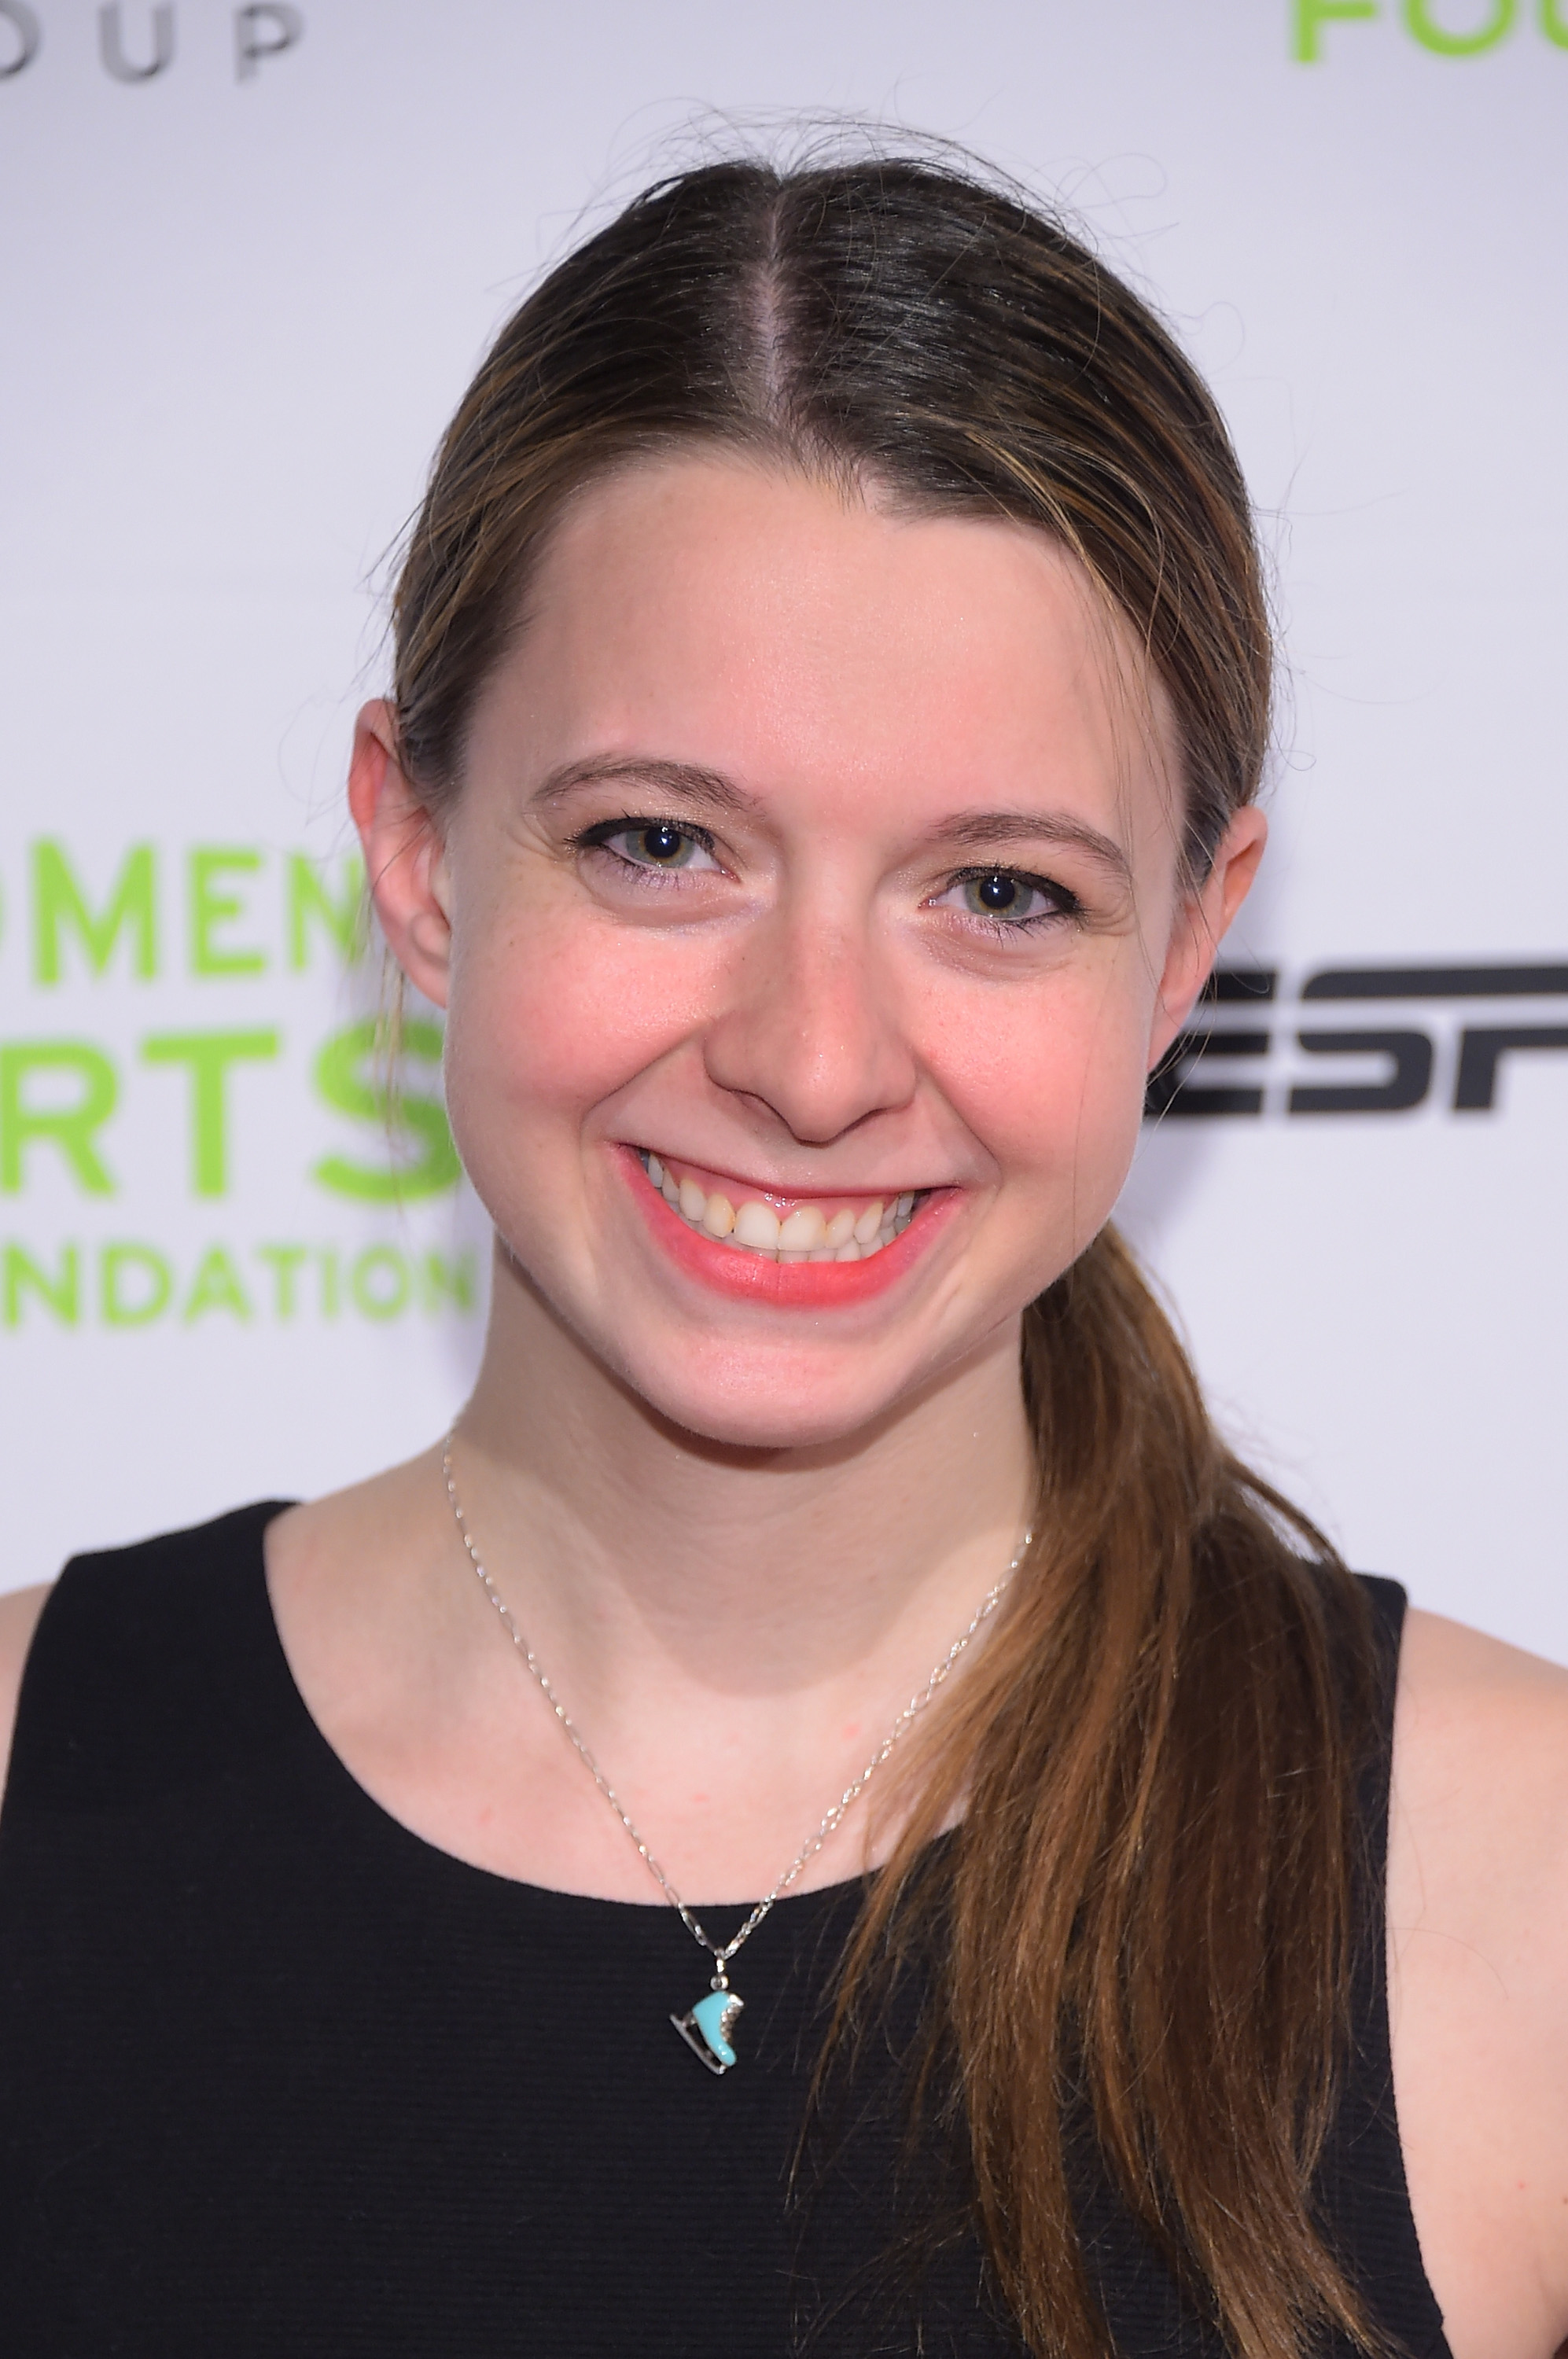 Figure Skater Emily Hughes attends the Women's Sports Foundation's 35th Annual Salute to Women In Sports awards on Oct. 15, 2014 in New York City.